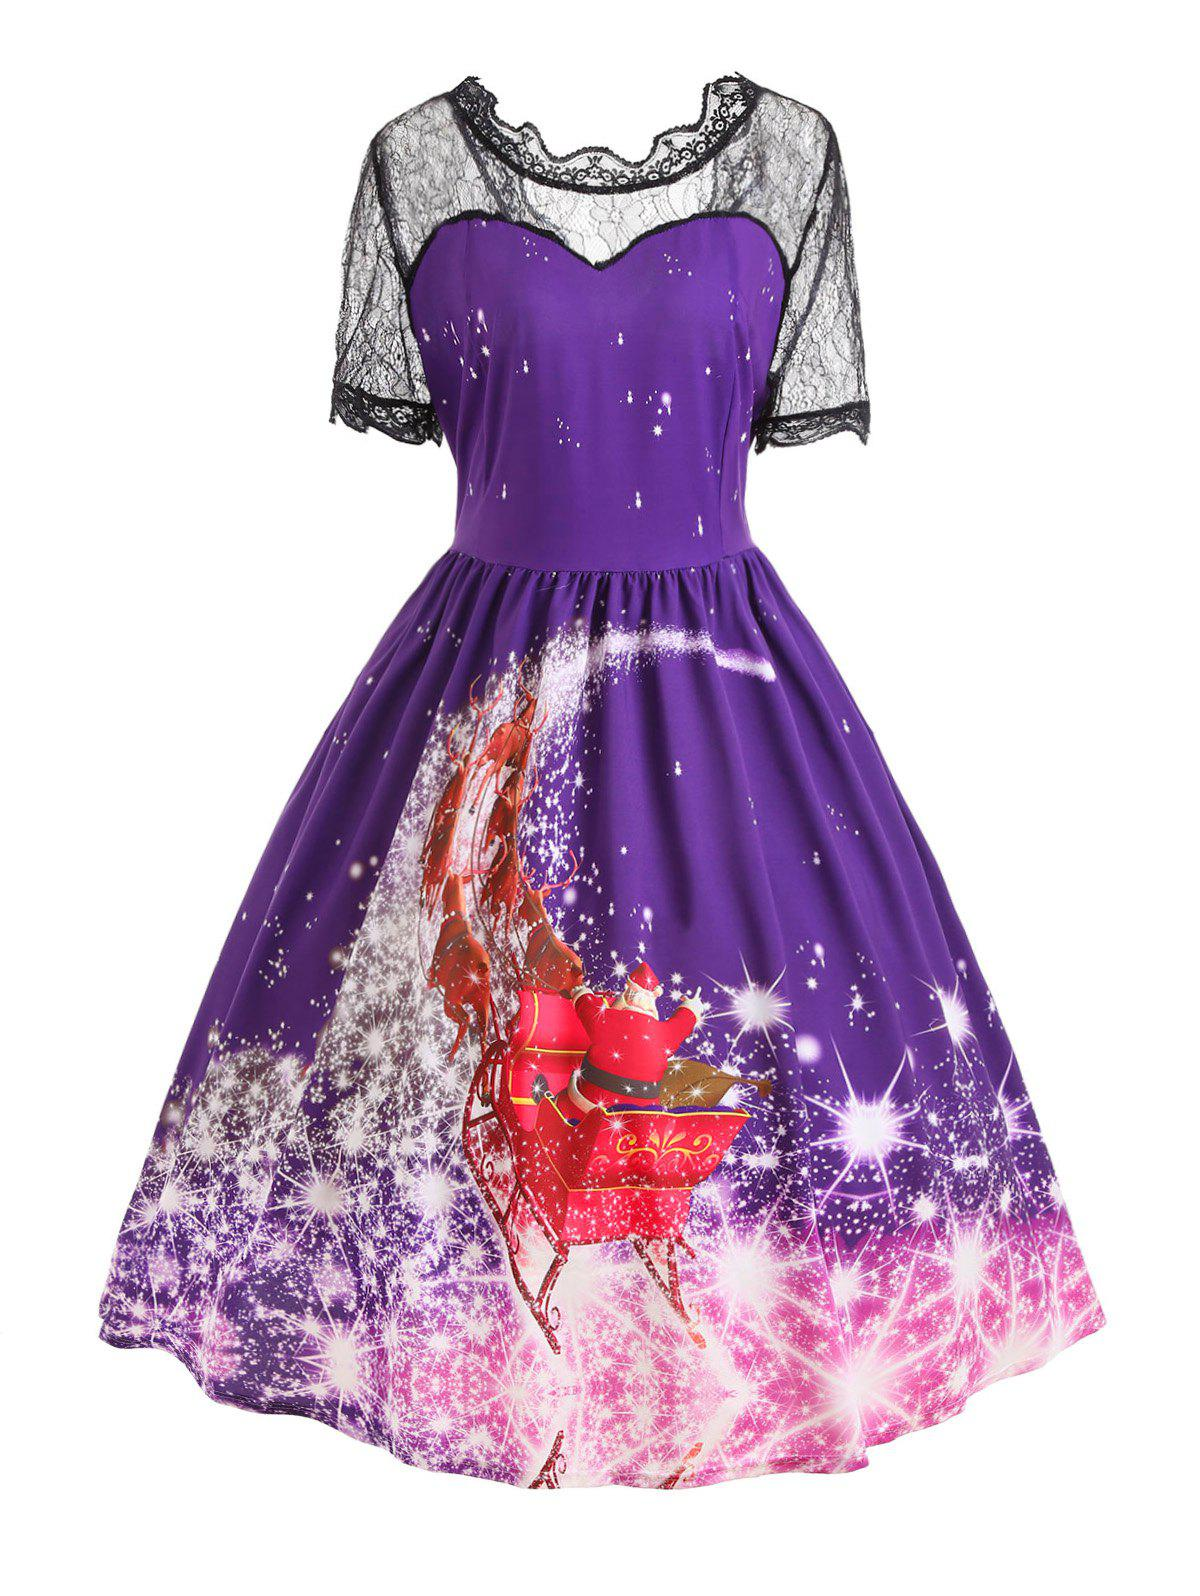 Plus Size Christmas Santa Claus Lace Panel DressWOMEN<br><br>Size: 4XL; Color: PURPLE; Style: Vintage; Material: Polyester; Silhouette: A-Line; Dresses Length: Mid-Calf; Neckline: Ruffled; Sleeve Length: Short Sleeves; Embellishment: Lace; Pattern Type: Print; With Belt: No; Season: Fall,Spring,Summer,Winter; Weight: 0.3100kg; Package Contents: 1 x Dress;